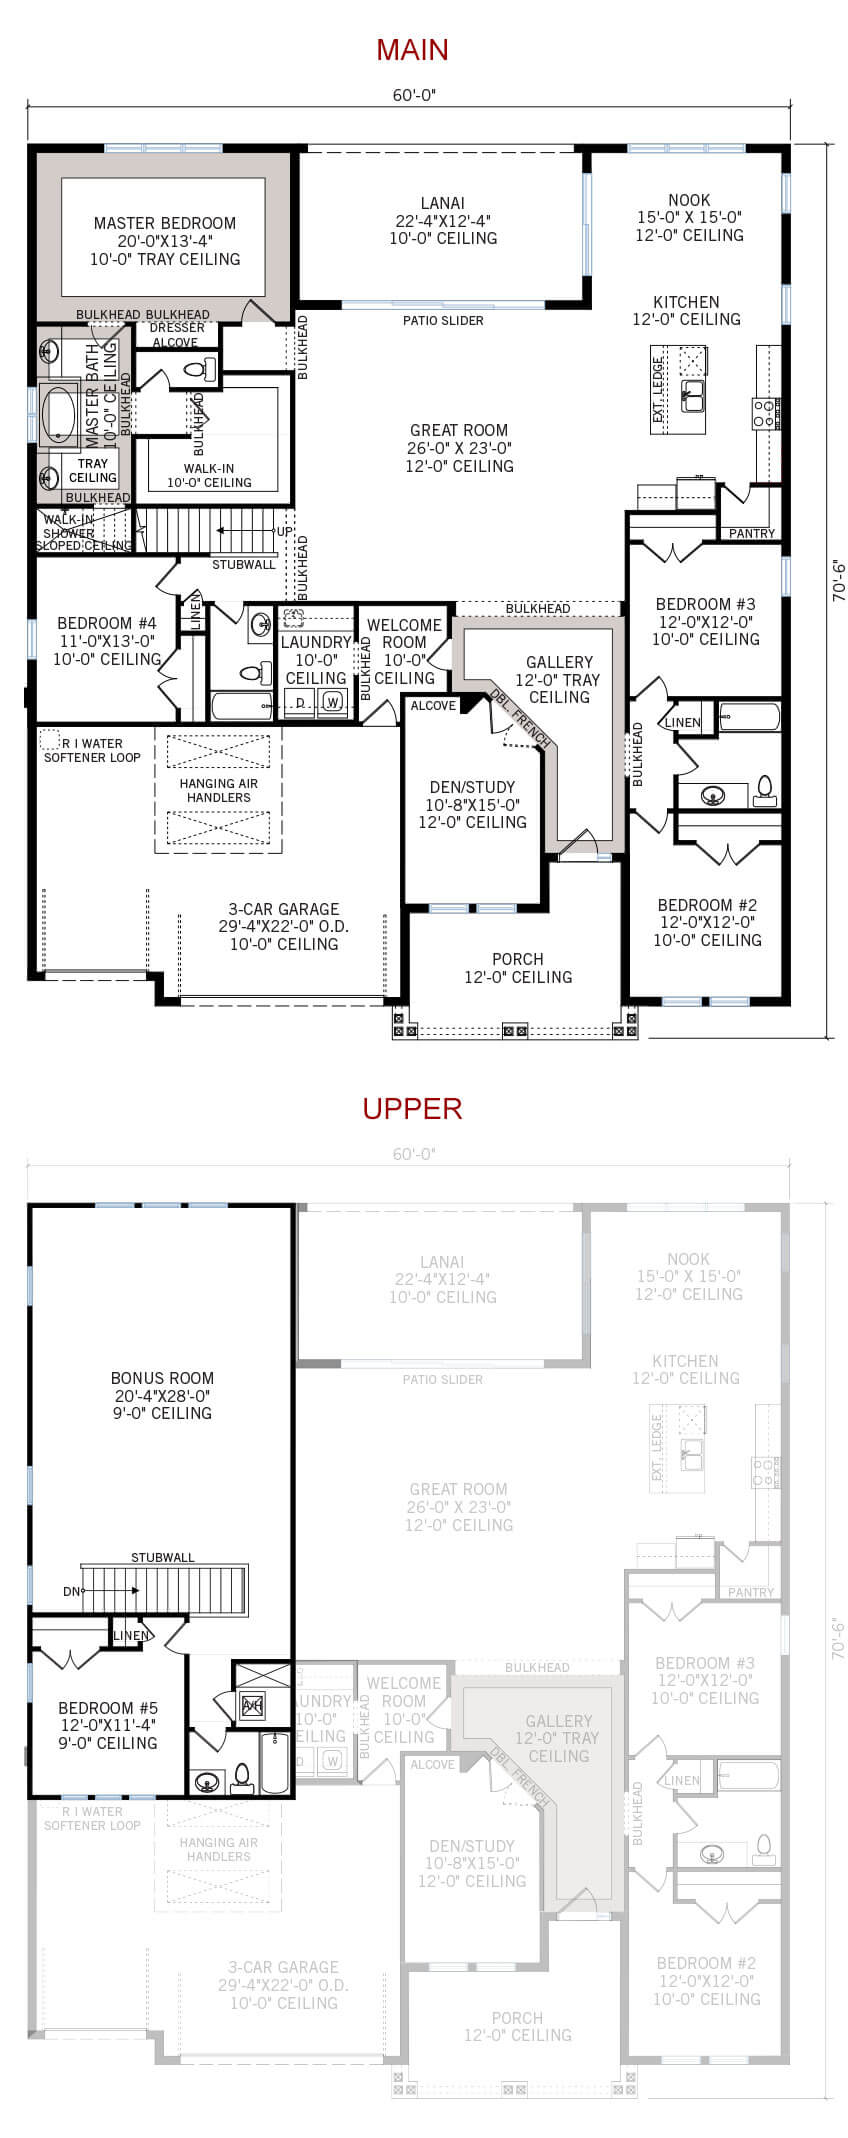 New Tampa Single Family Home Quick Possession Henley Floorplan in Oakwood Reserve, located at 2420 CLEMENT ROAD, LUTZ, FL 33549 (LOT 1) Built By Cardel Homes Tampa